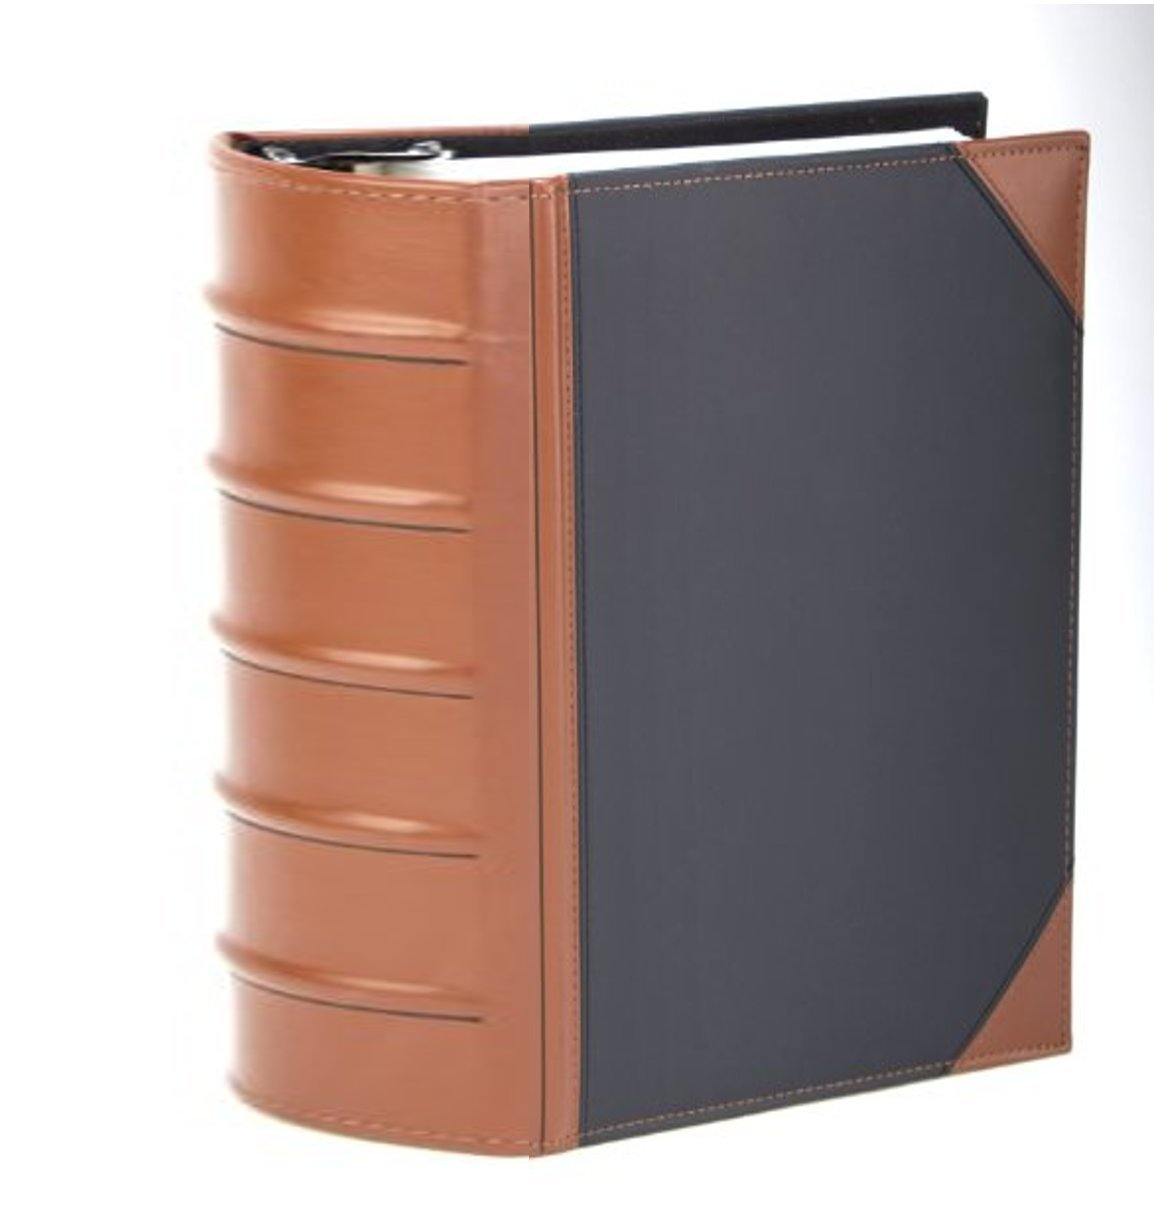 Executive Binder, English Leather 2 Tone with Stitching and Ribbed Spine, Heavy Duty 3'' Inch 3 D-ring with Buster, Holds 625 8.5''x 11'' Sheets (Black)